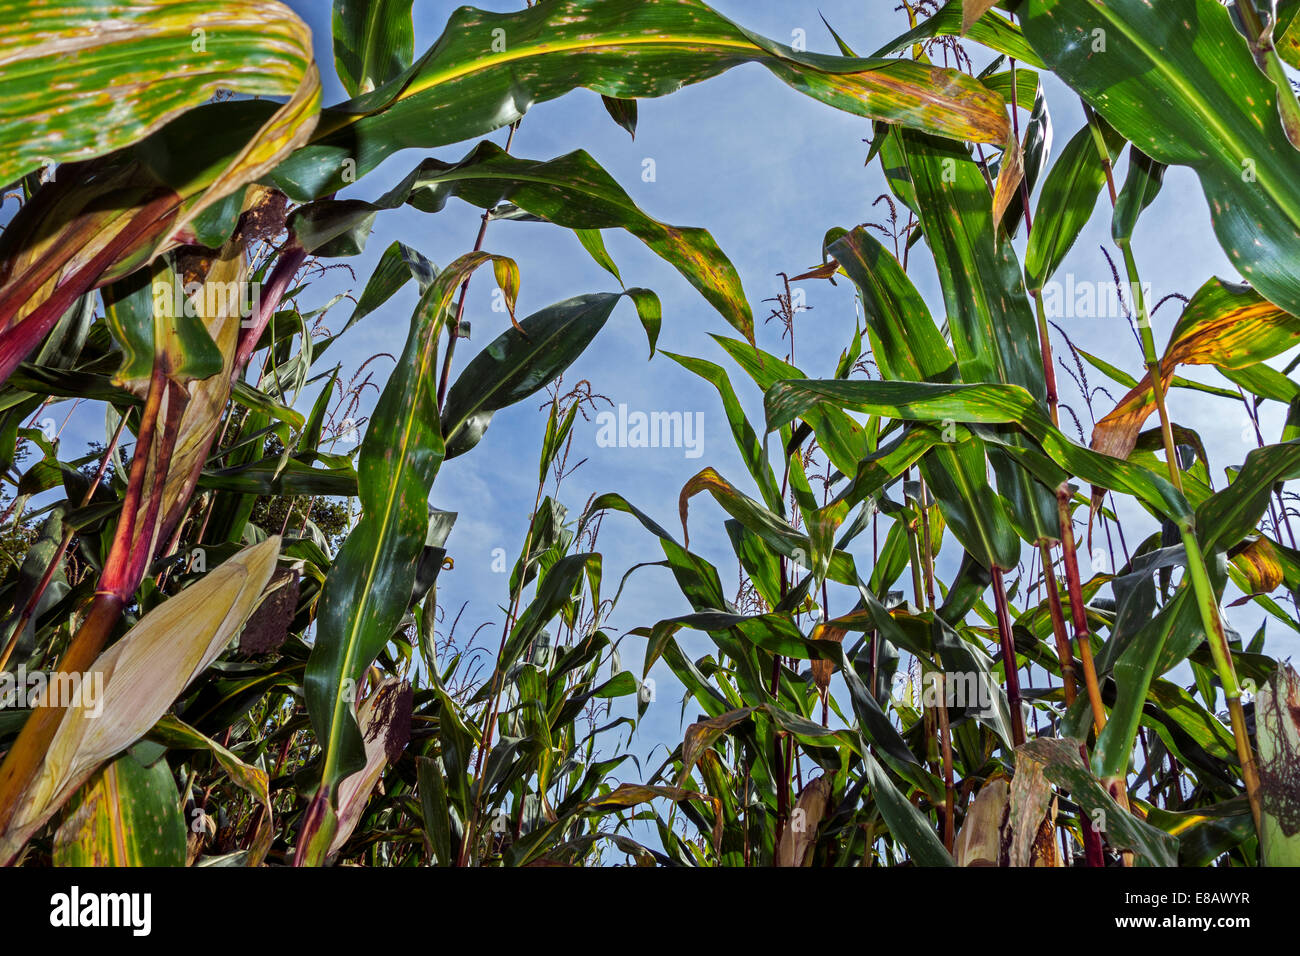 Worm's-eye view on maizefield / cornfield / field of maize - Stock Image